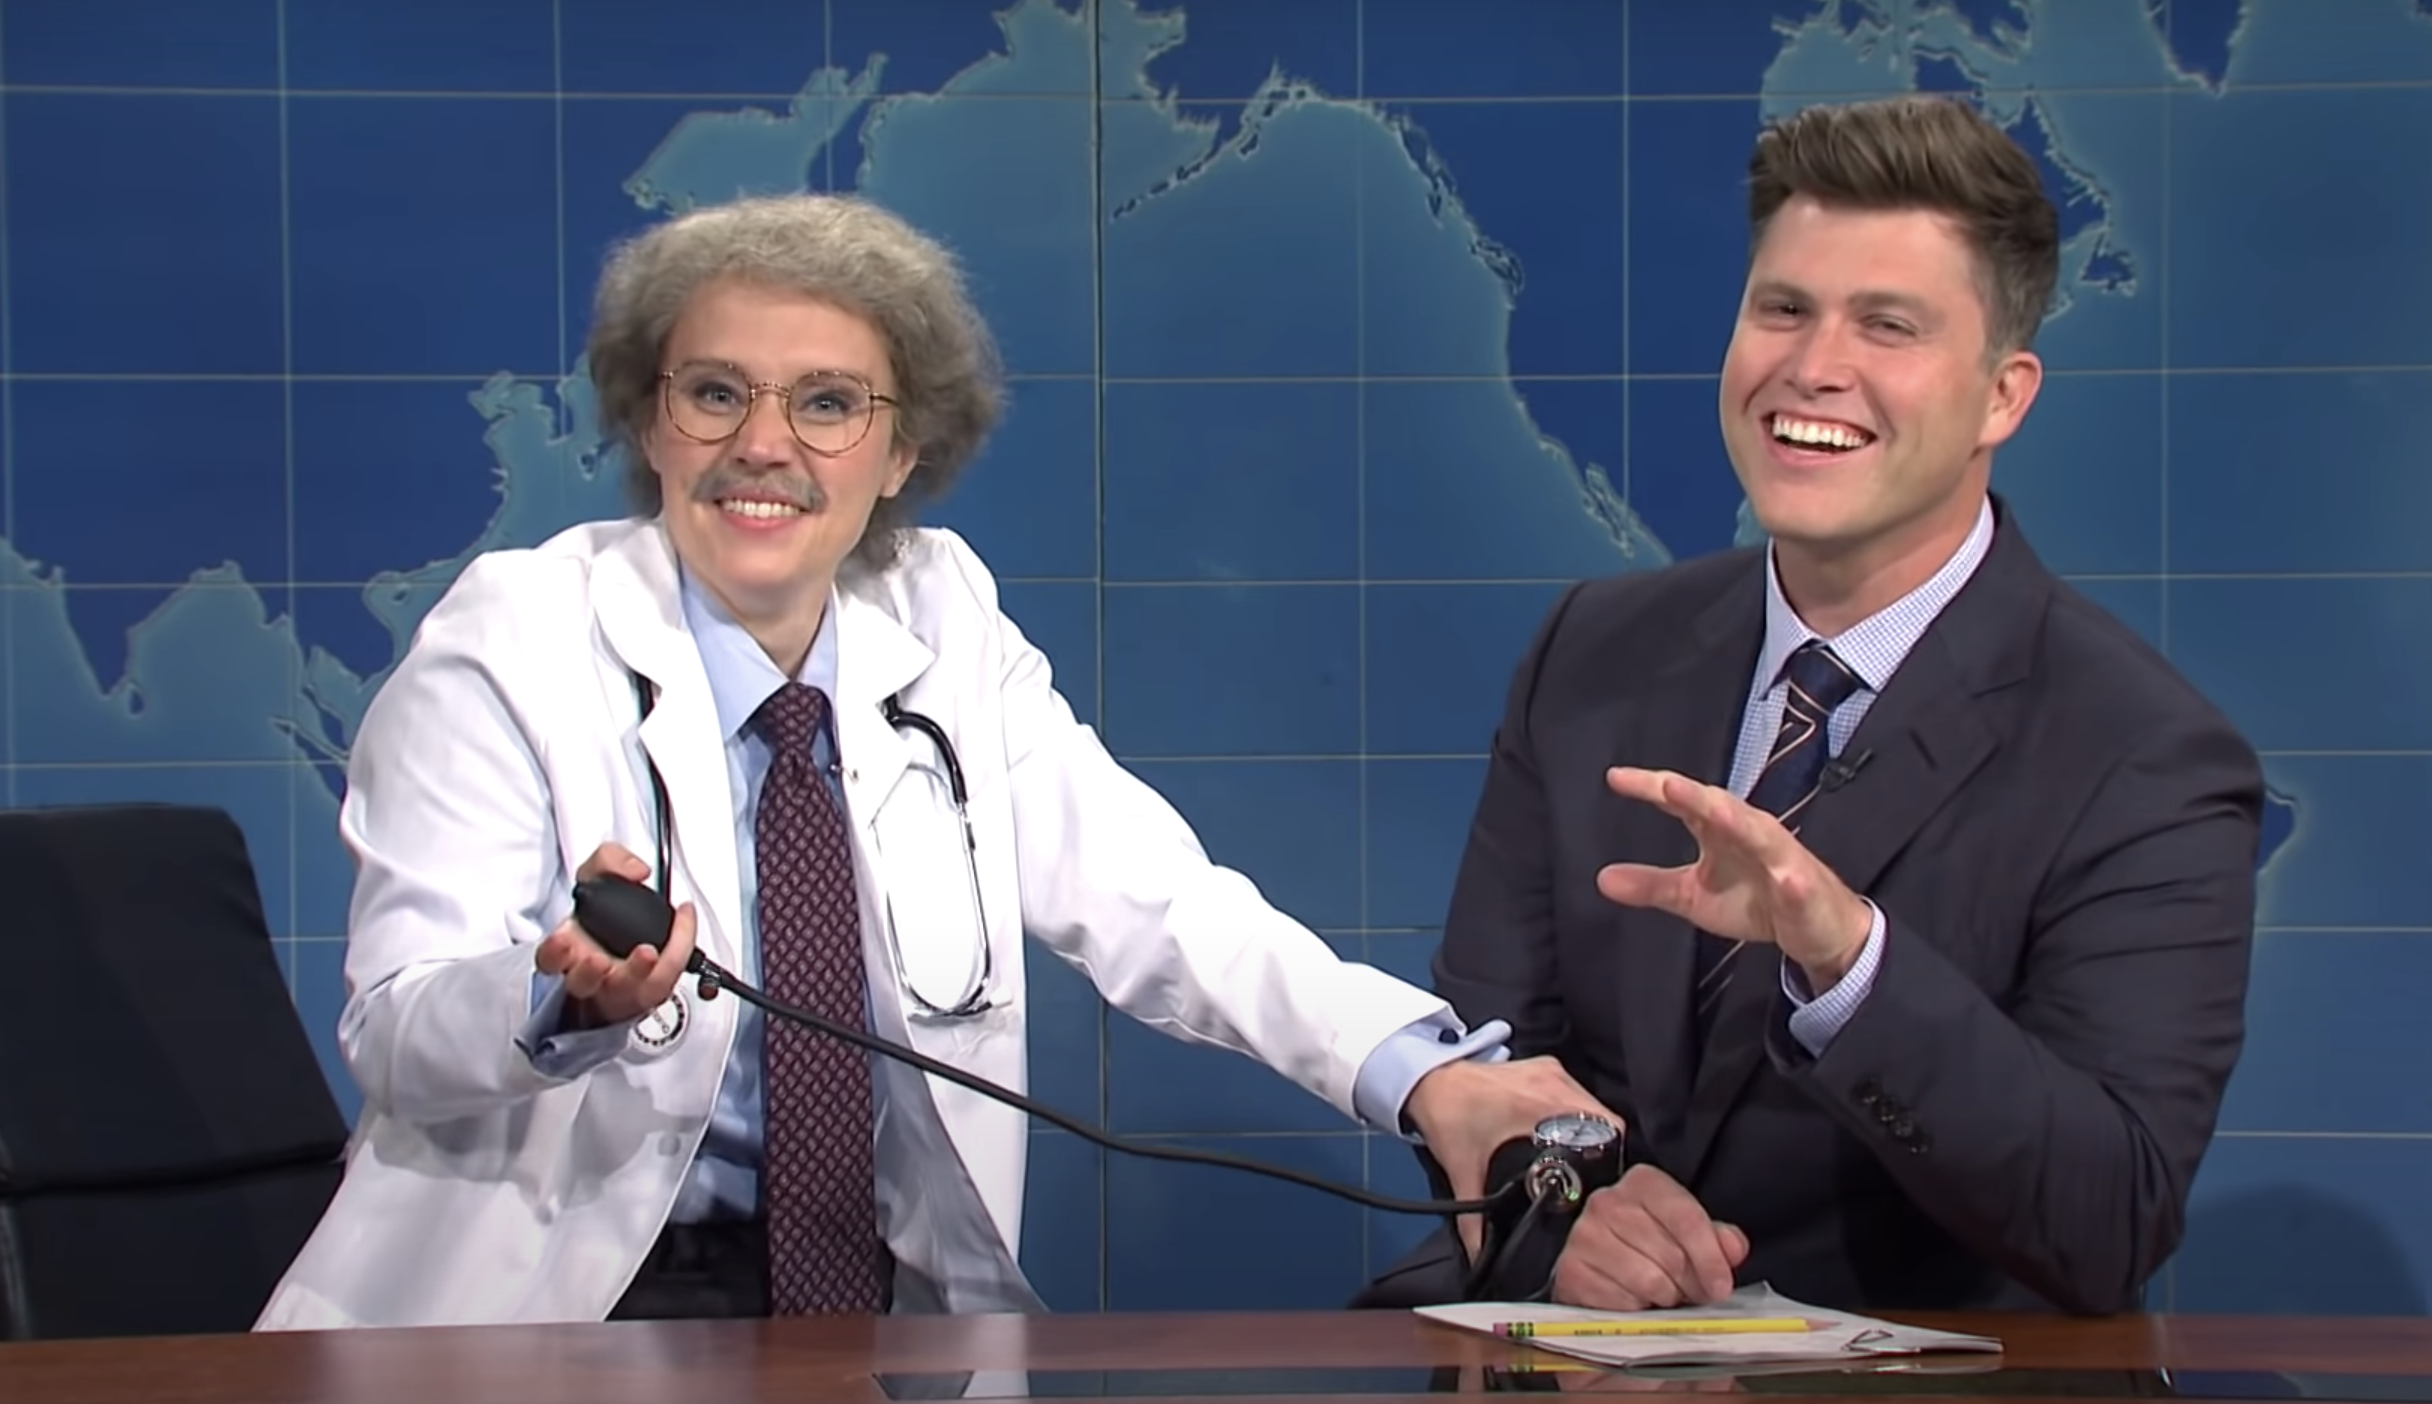 Snl Kate Mckinnon Breaks Character On Weekend Update With Colin Jost Indiewire